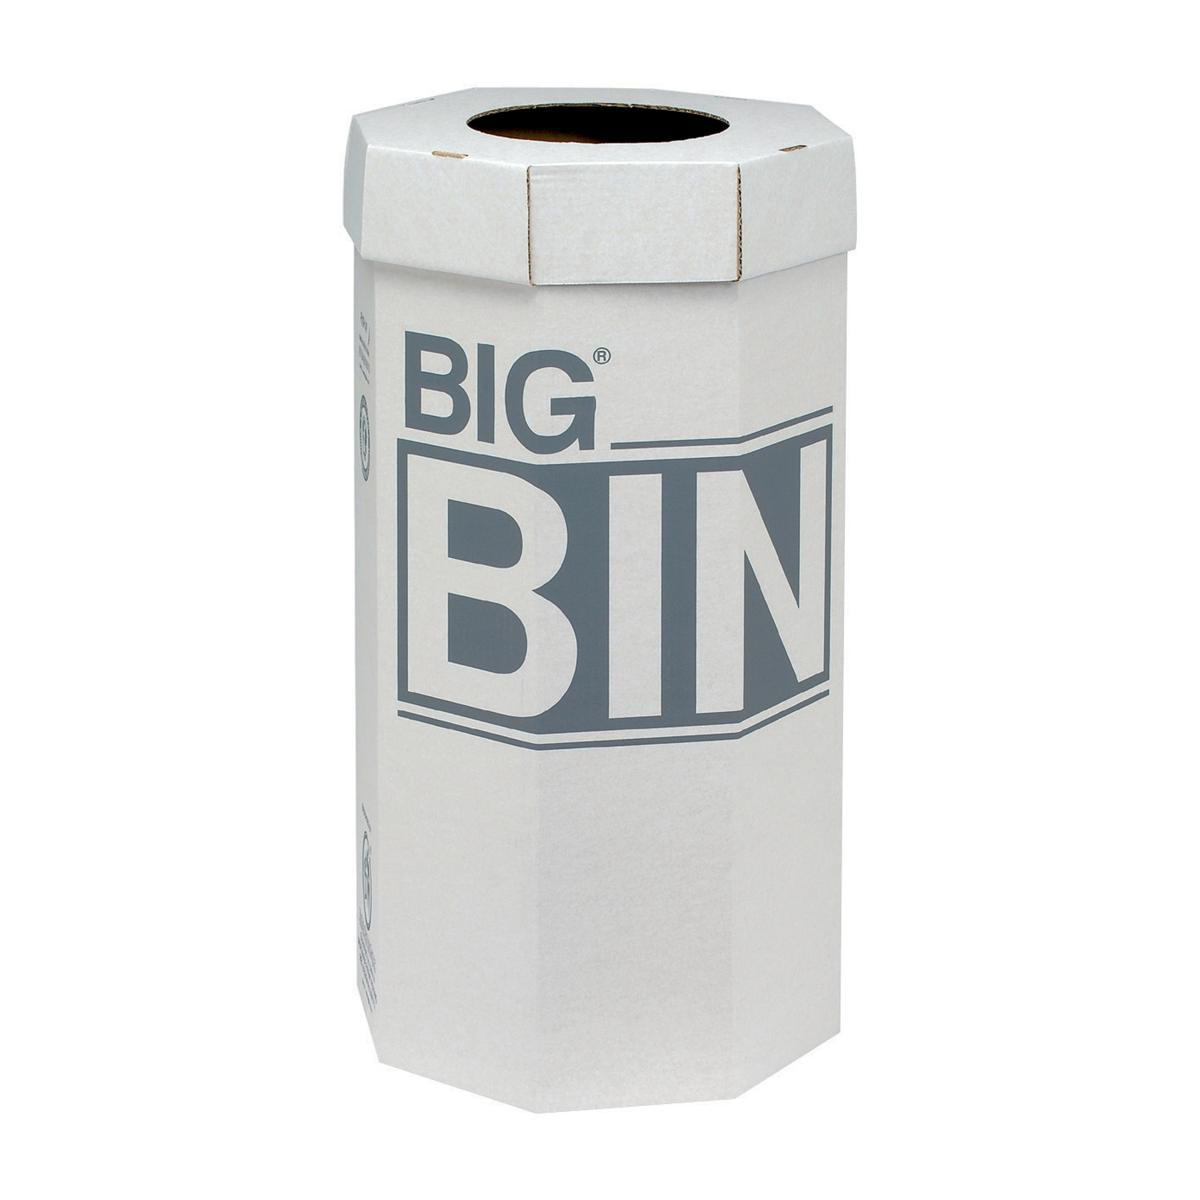 Recycling Bins Acorn Large Bin Flat Packed Recycled Board Material 160 Litres 450x900mm White Ref 142958 Pack 5